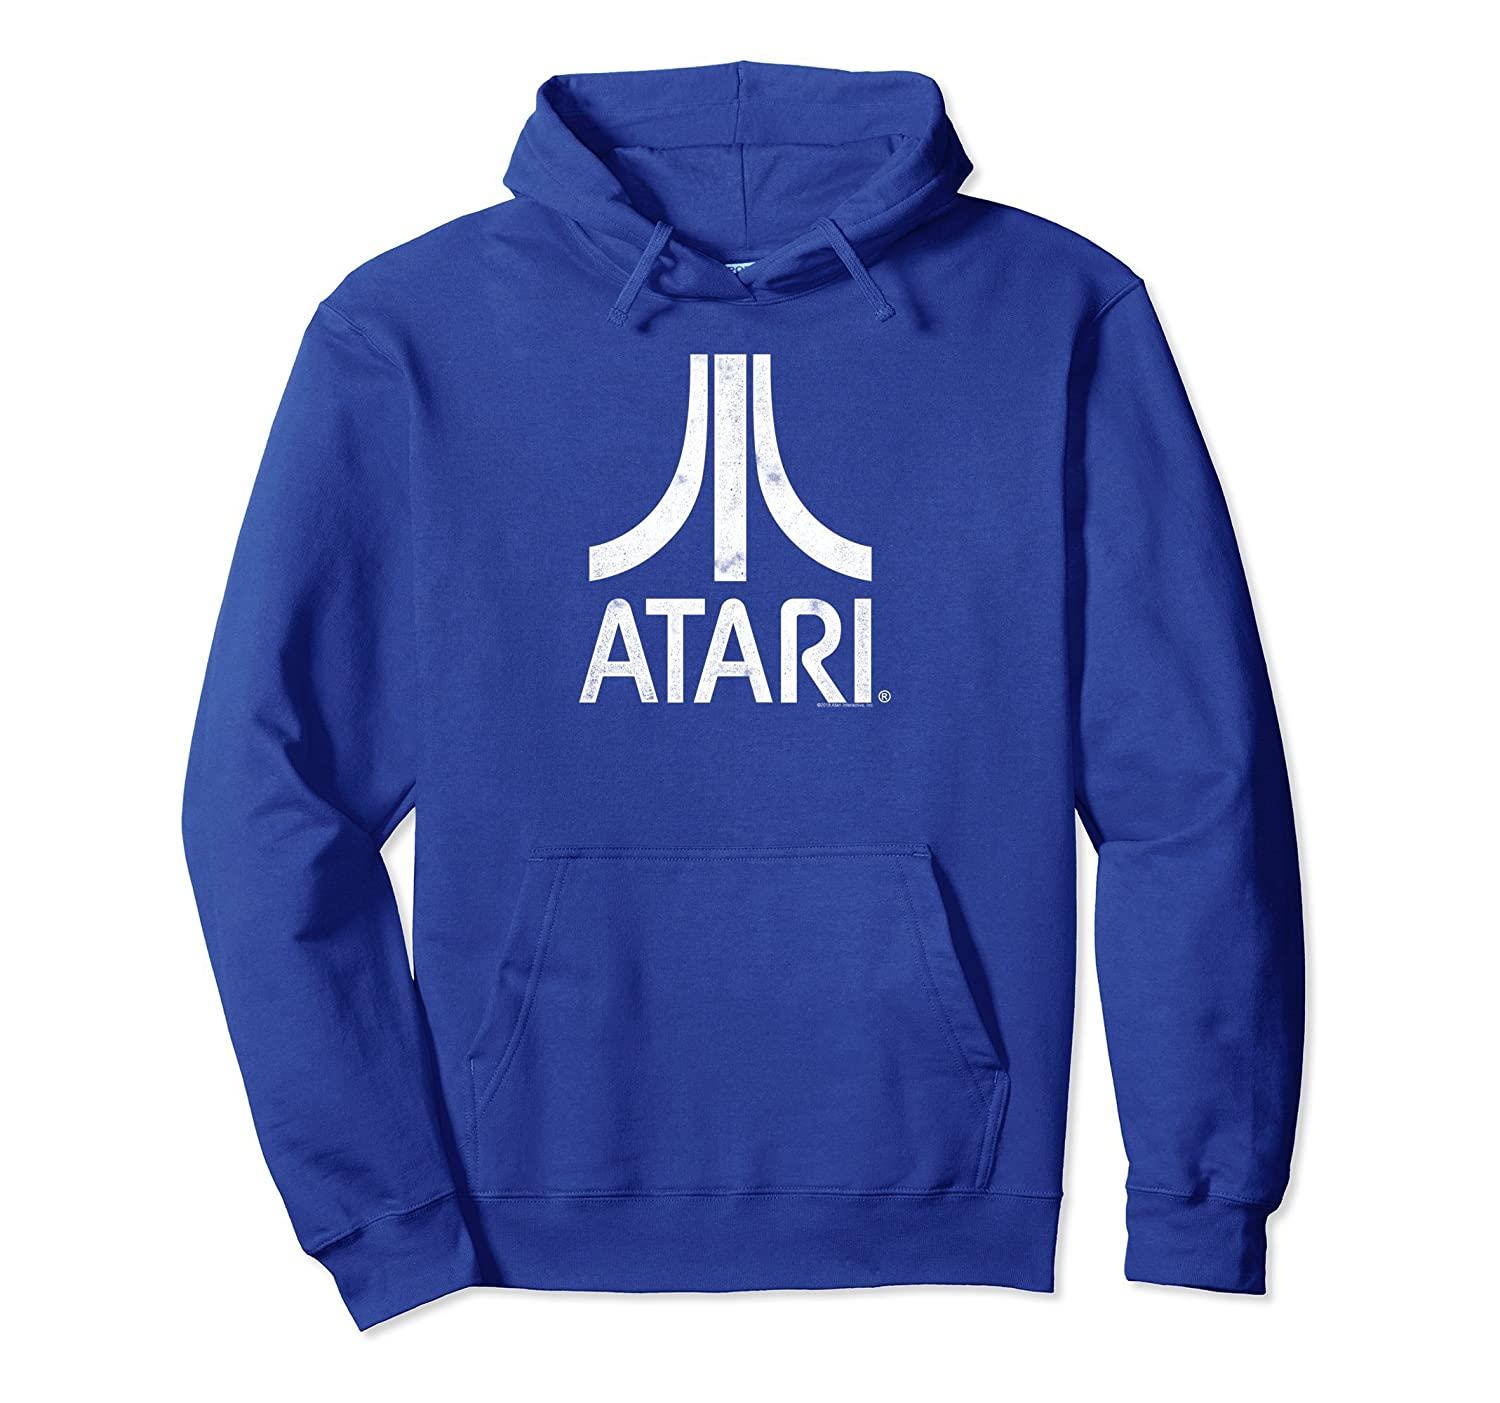 Atari White Slight Distressed Atari Logo Pullover Hoodie-mt